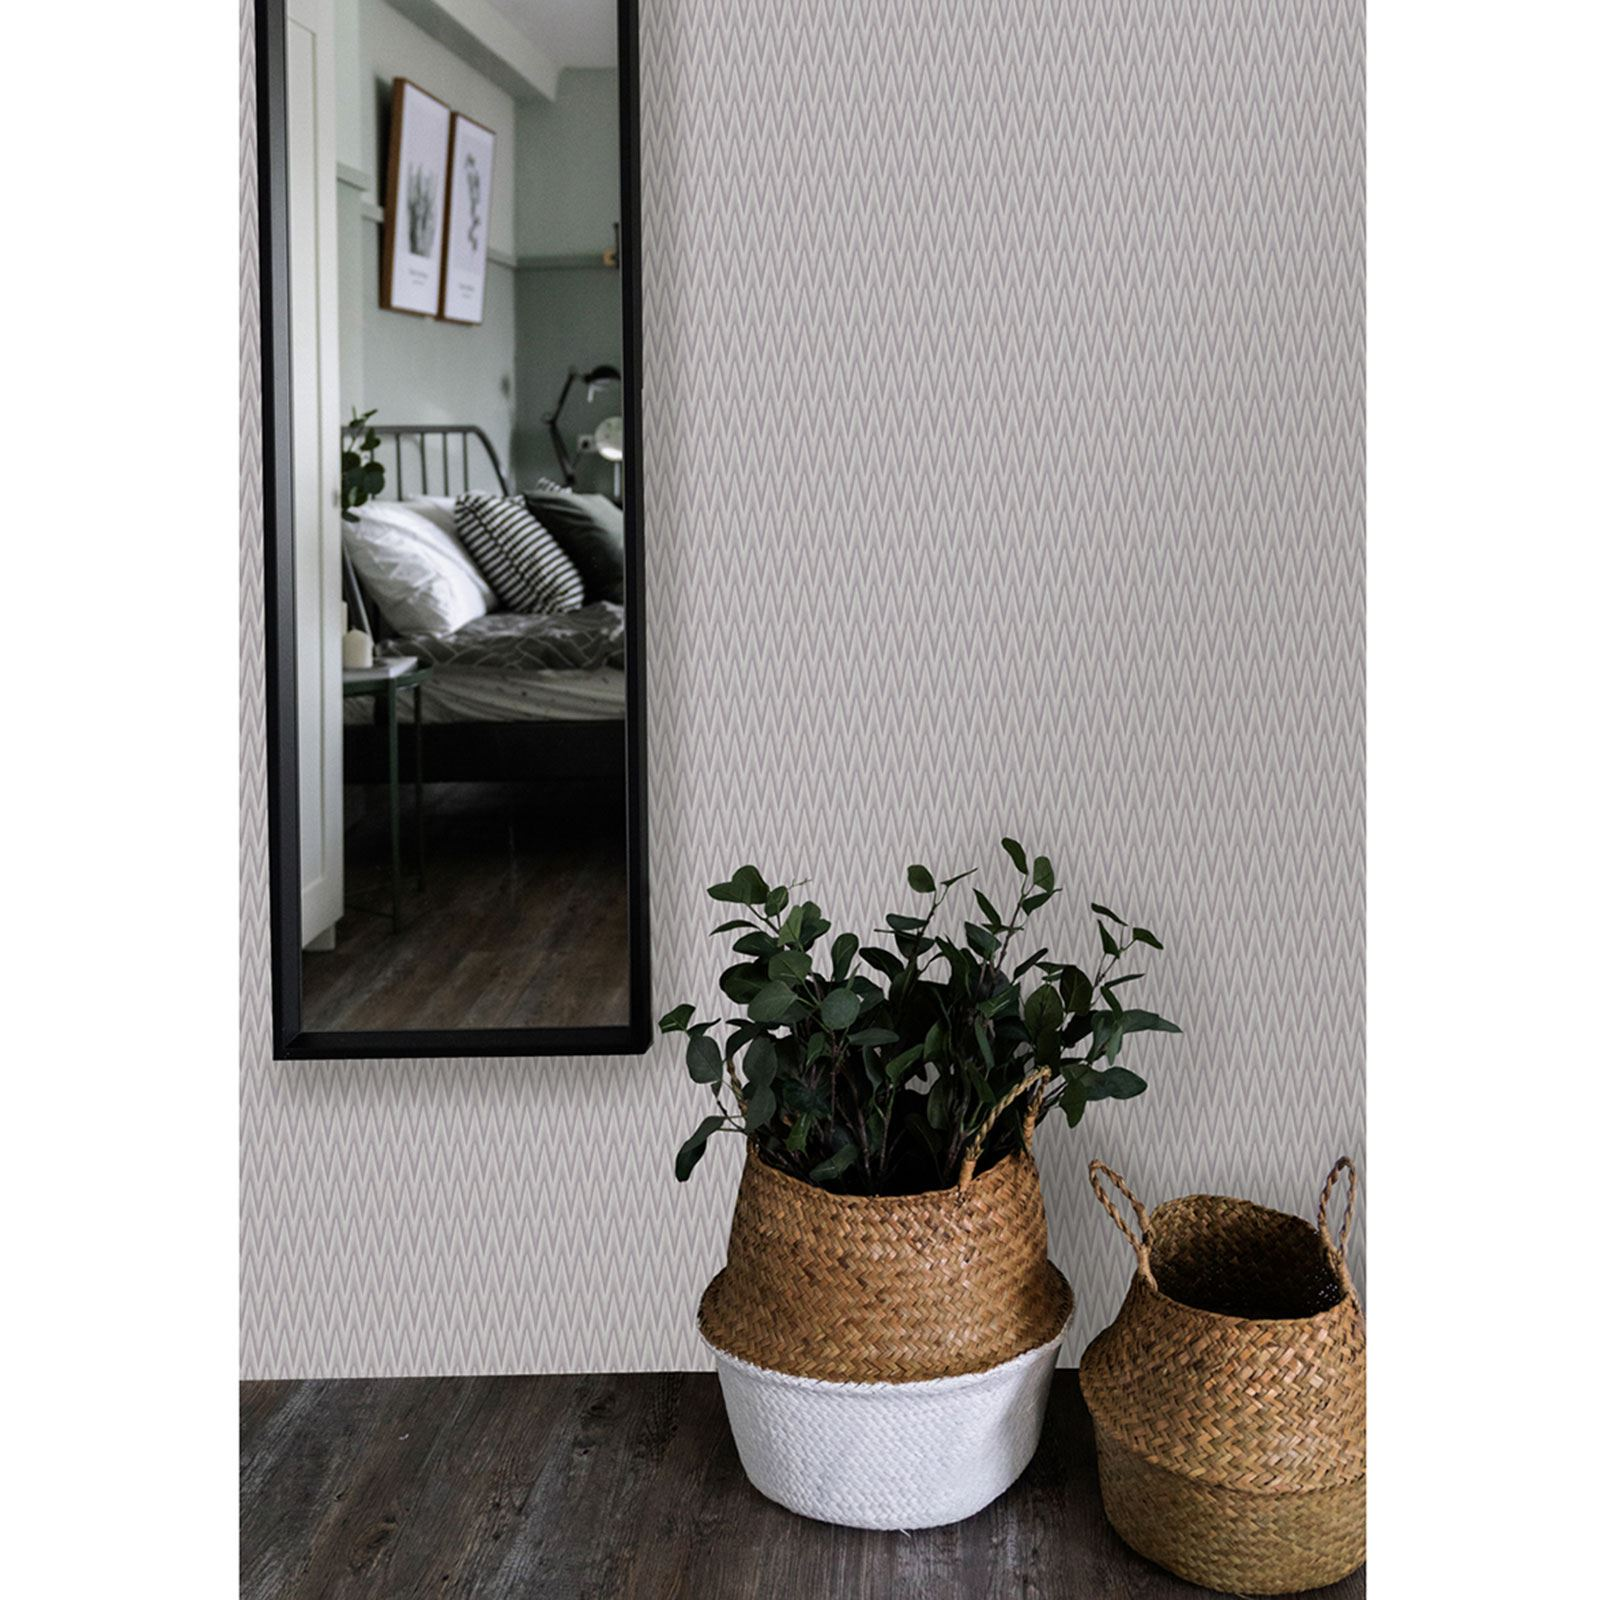 Holden Sakkara Summit Wallpaper High Quality Paste the Wall Geometric